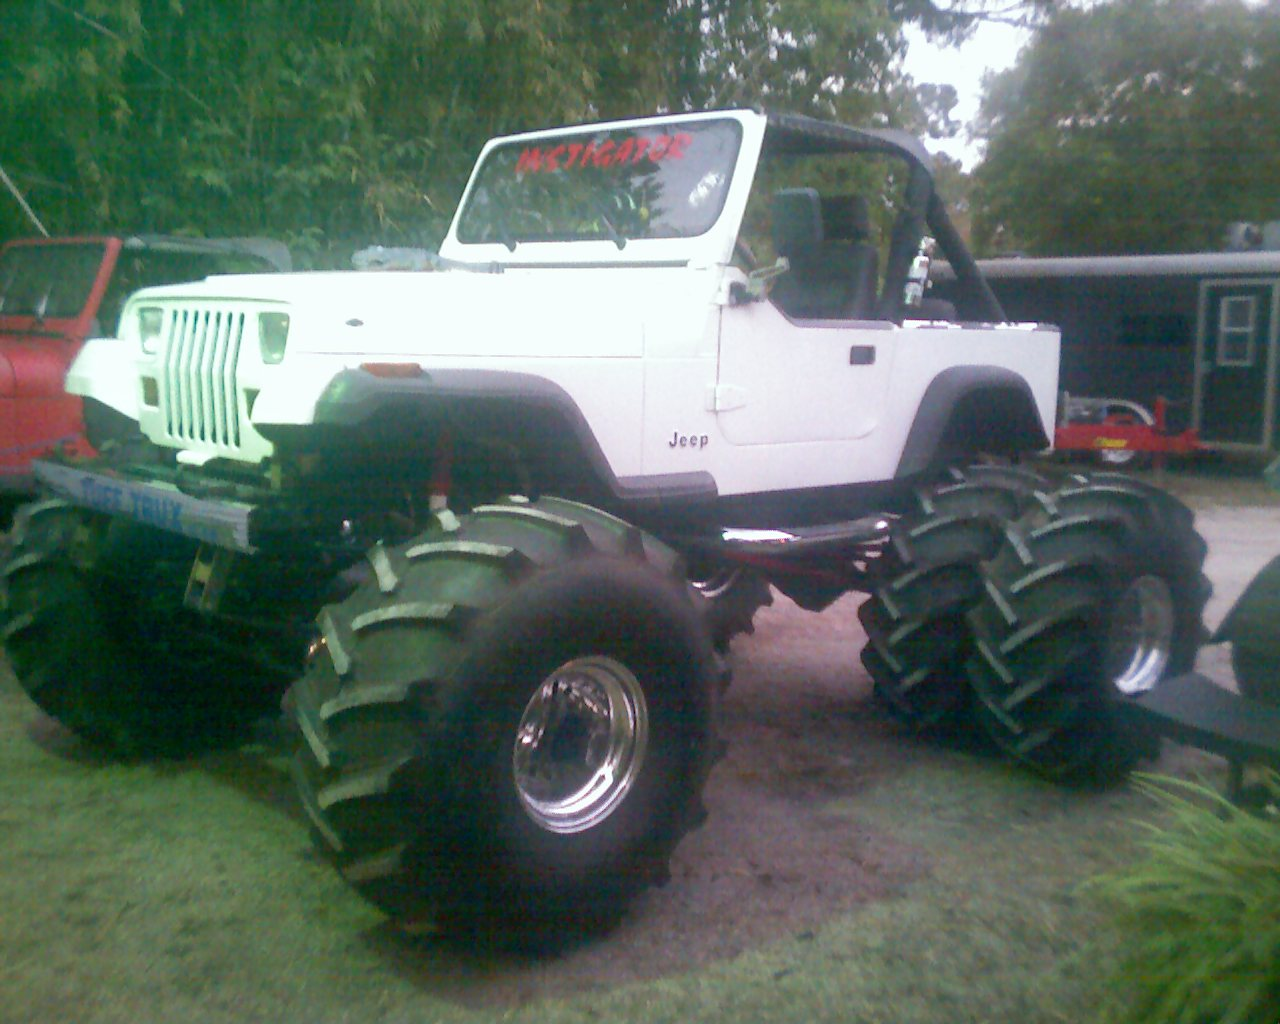 21 5X16 1 Tractor Tires http://www.jeepforum.com/forum/f12/how-will-my-jeep-look-xx-tires-x-x-lift-109455/index55.html